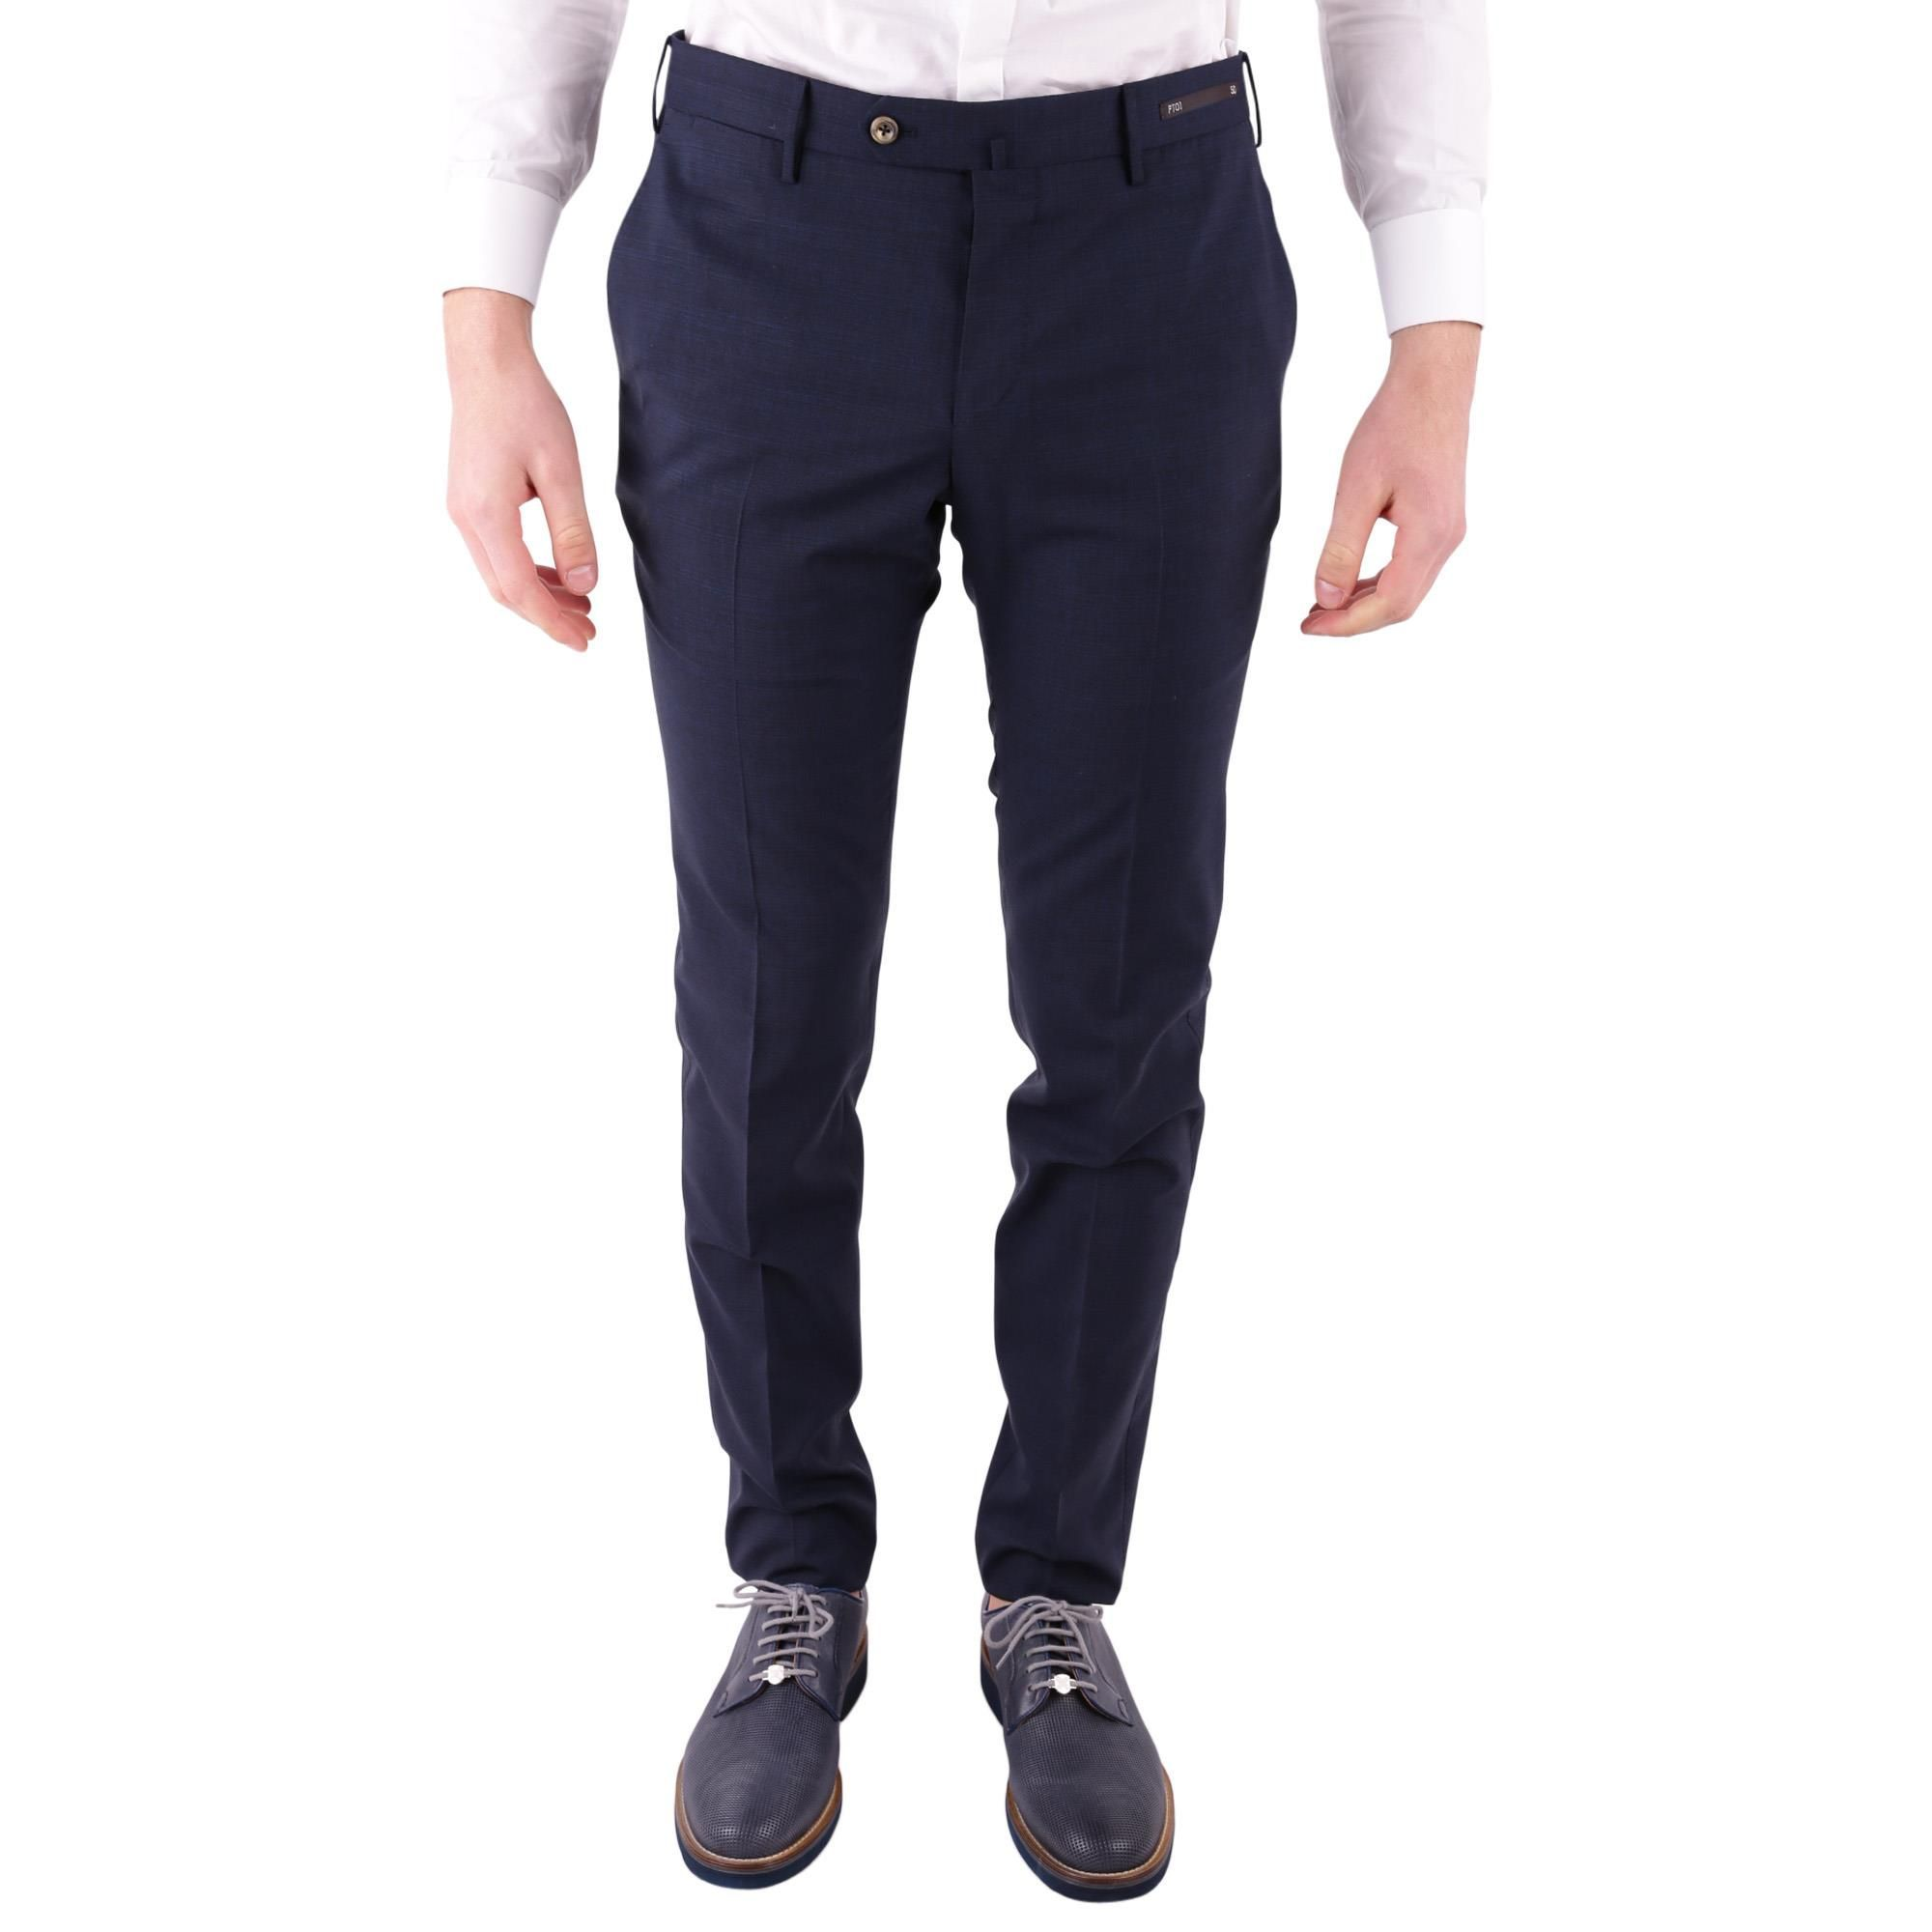 PT01 MEN'S DSTVZ00NTVPO480350 BLUE COTTON PANTS